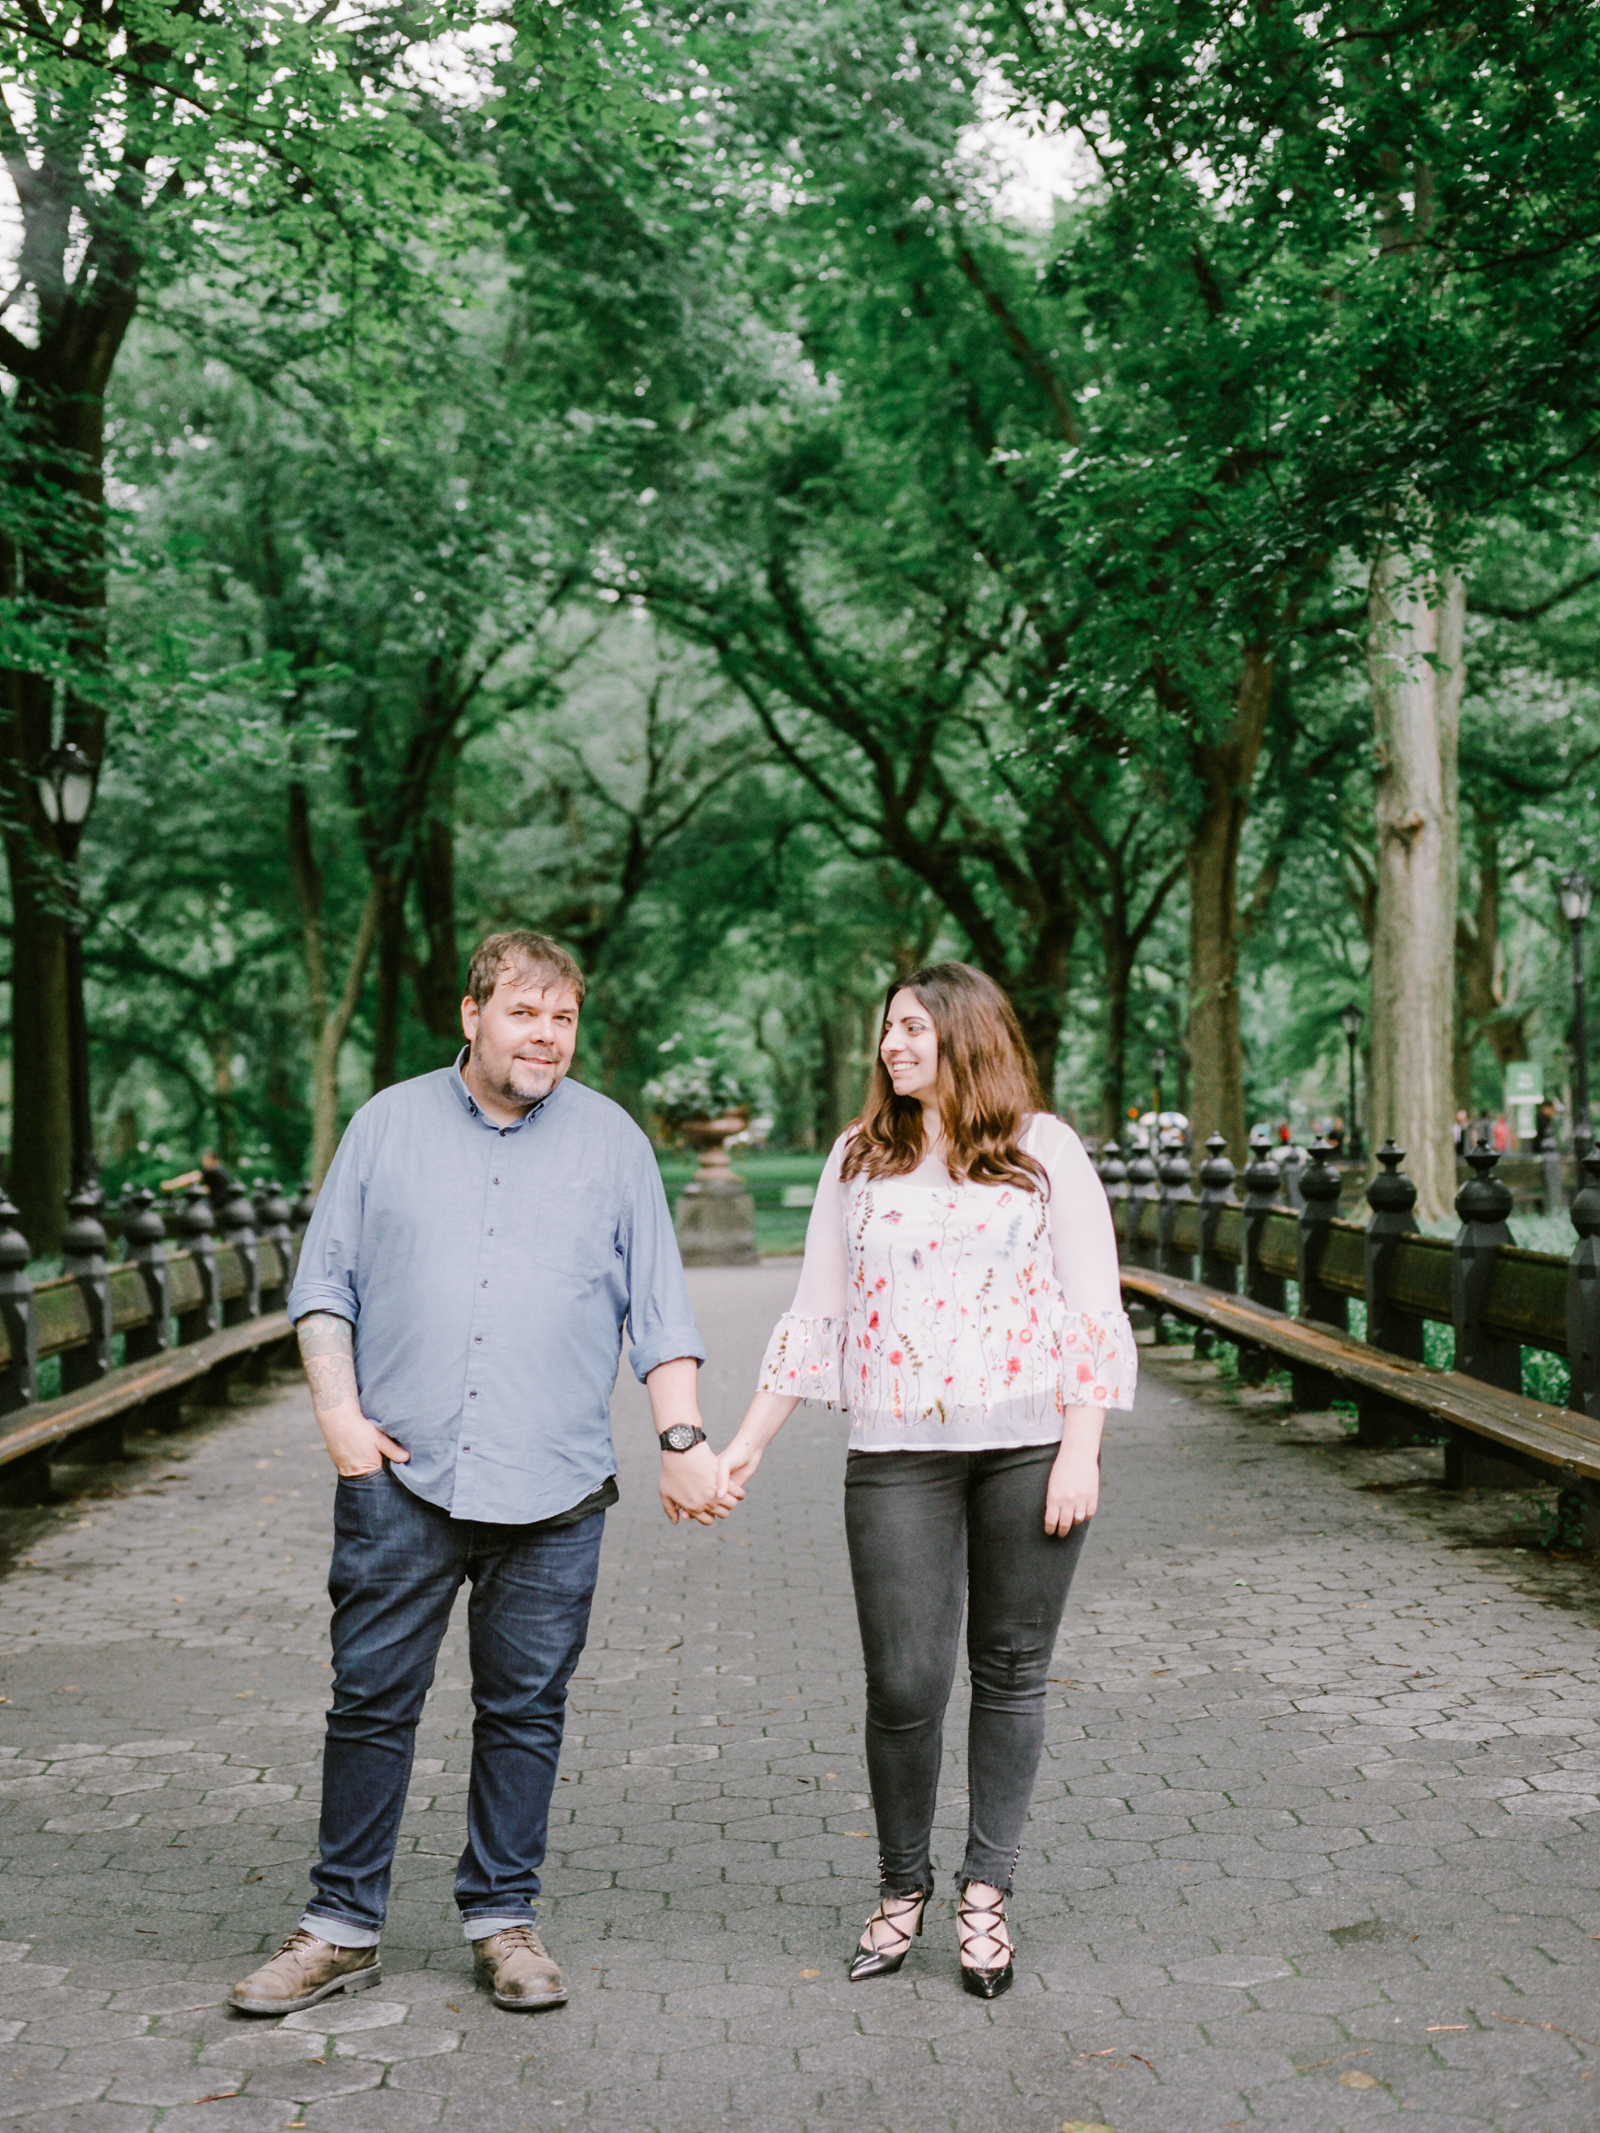 Central-Park-NYC-Engagement-Session-film-photography-59.jpg